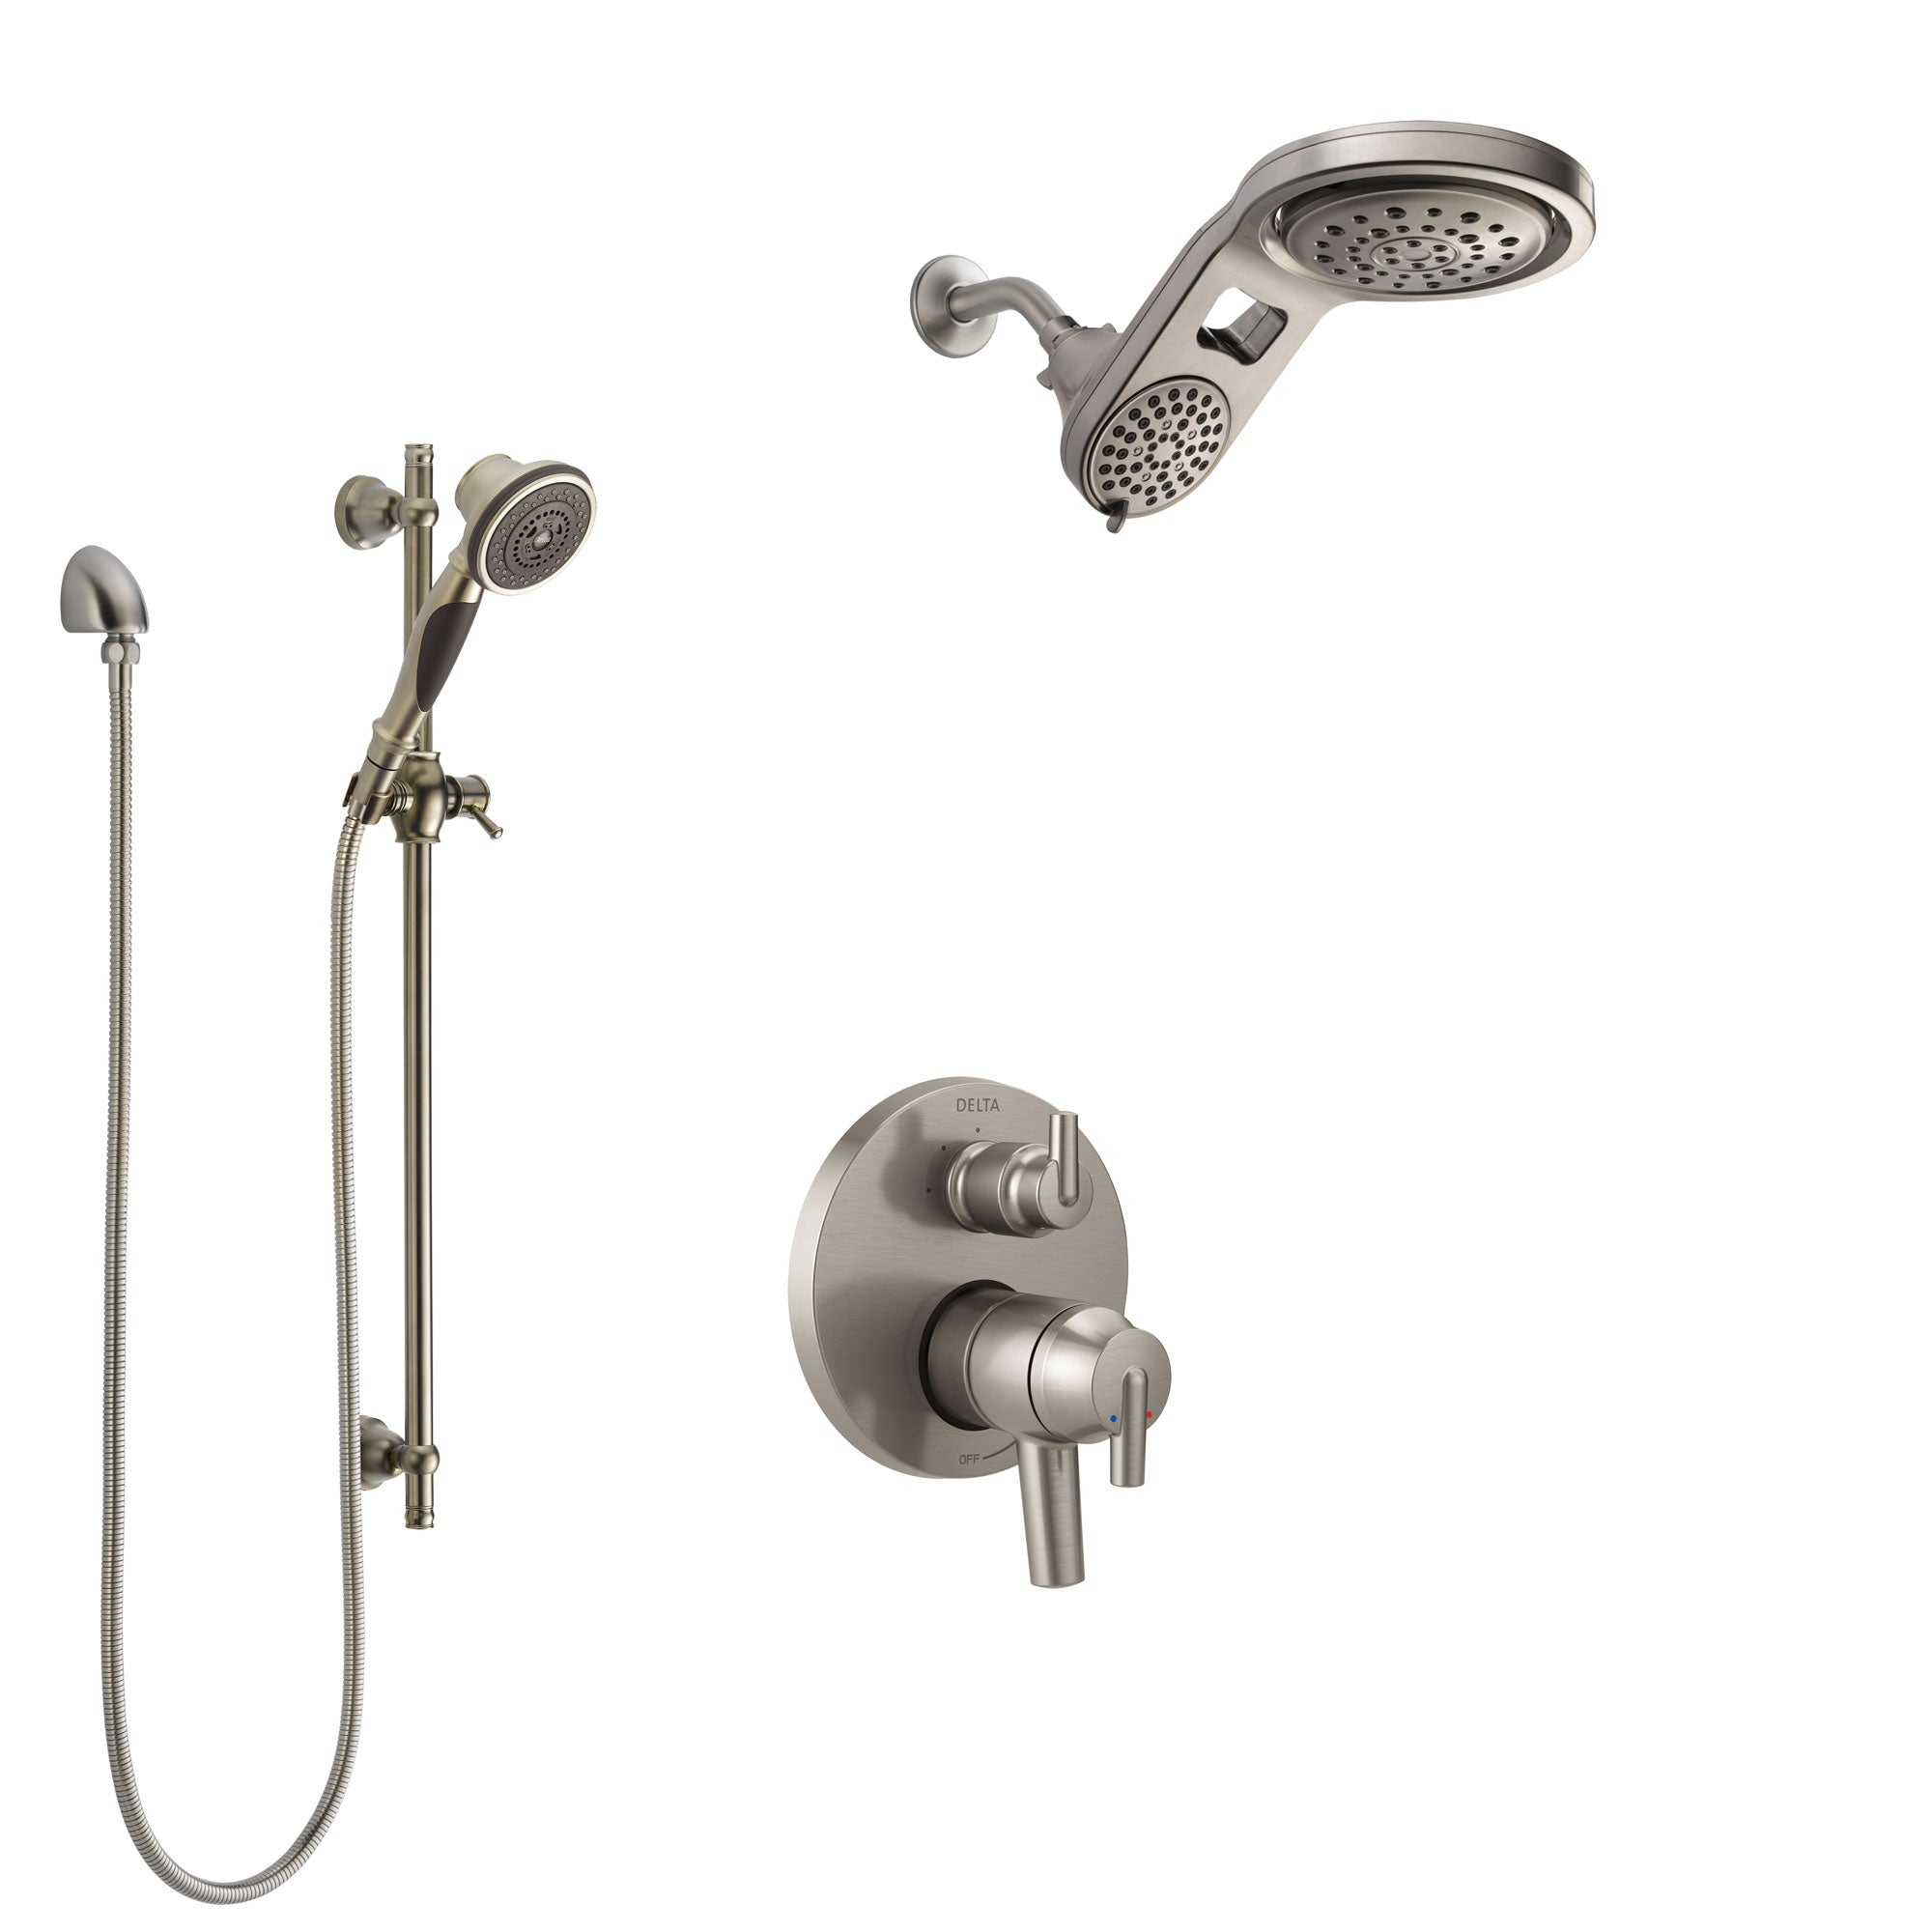 Delta Trinsic Dual Control Handle Stainless Steel Finish Shower System, Integrated Diverter, Dual Showerhead, and Hand Shower SS27859SS12